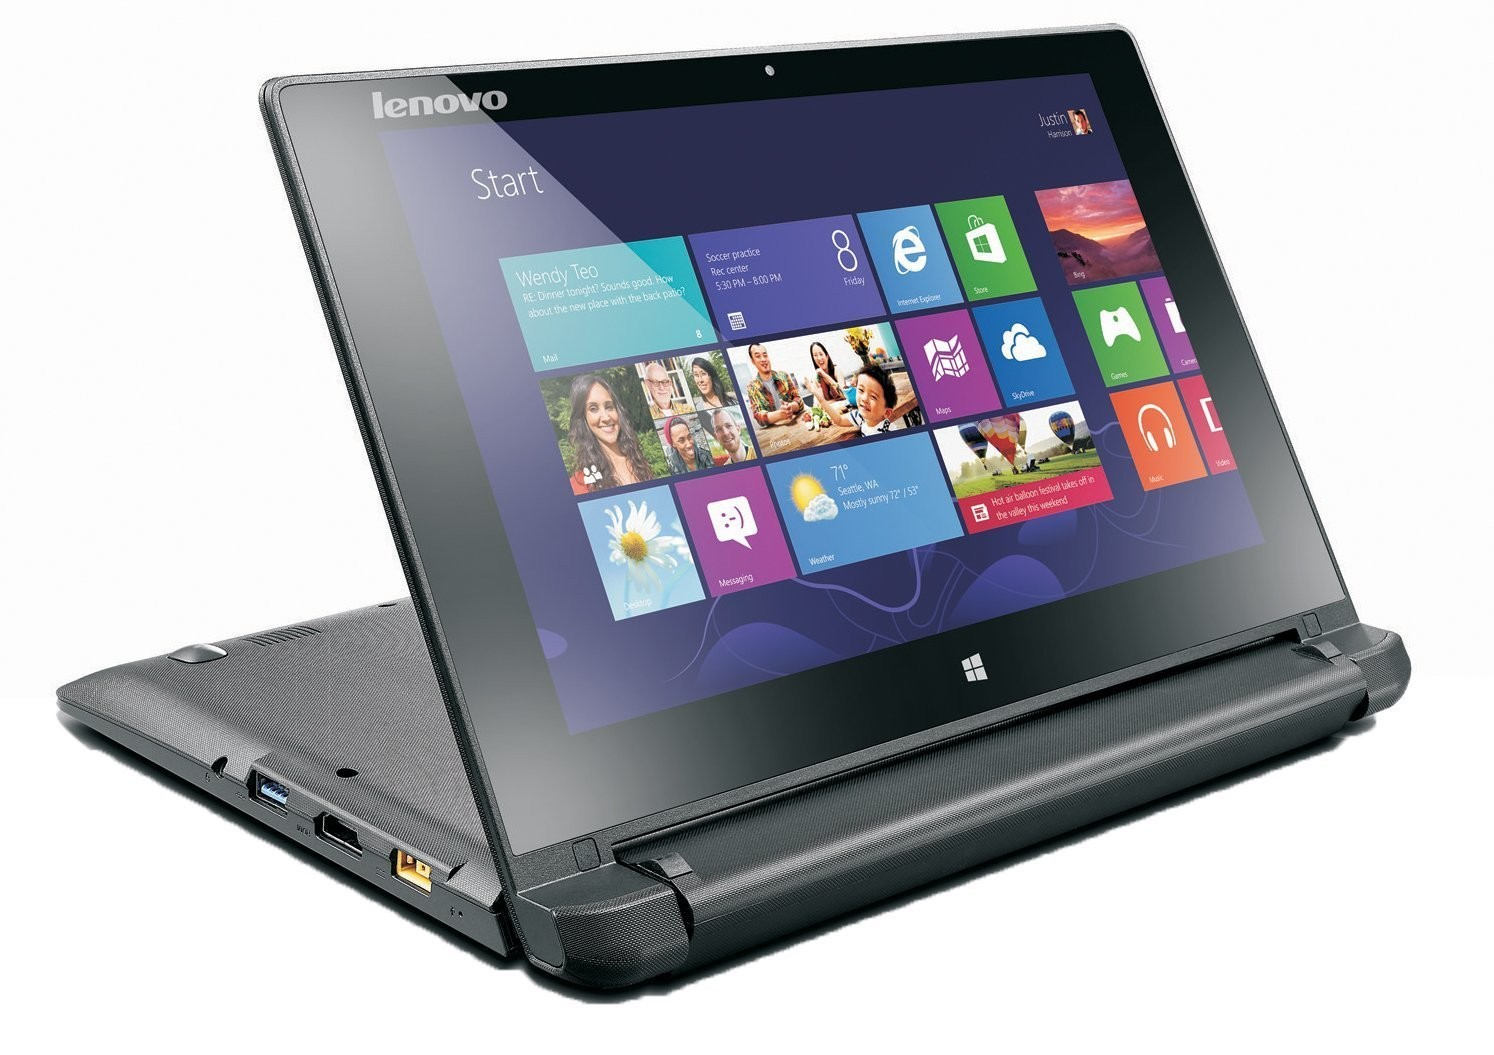 Lenovo Flex 10 1-inch Multimode Touchscreen Laptop (Black) - (Intel CDC  N2806 2 0GHz, 2 GB RAM, 320 GB HDD, Integrated Graphics, Webcam, HDMI,